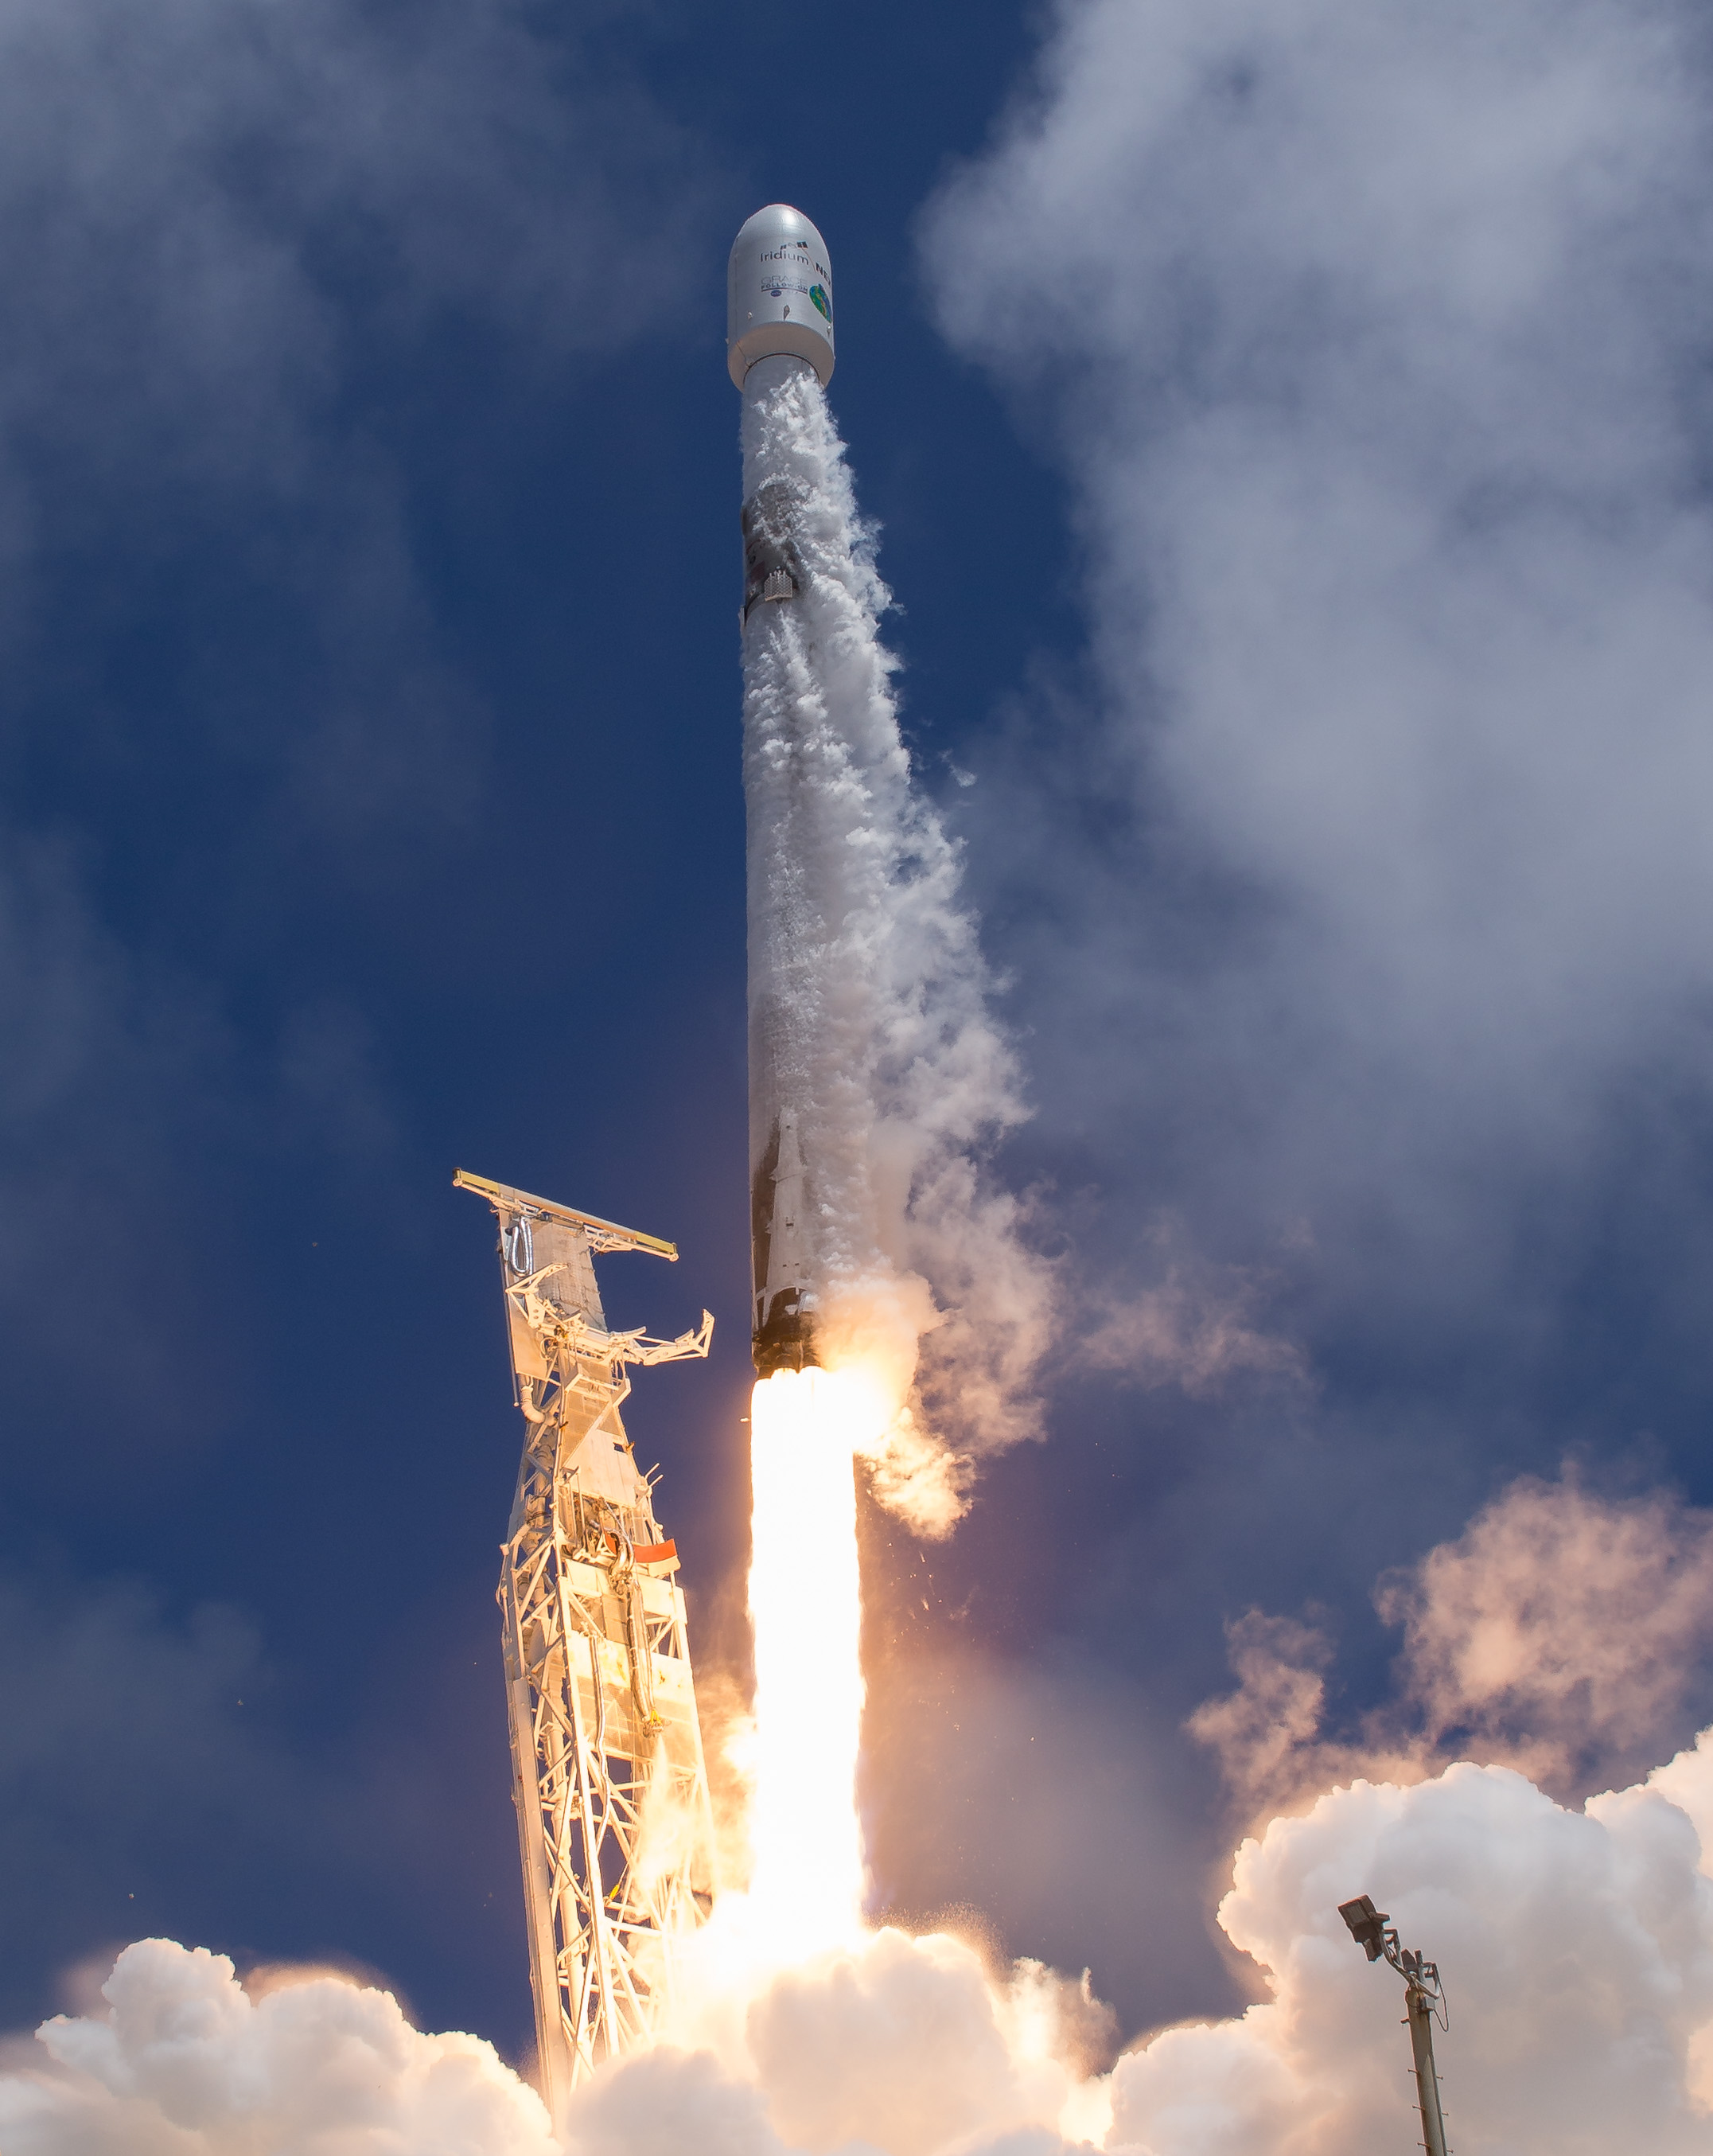 A vertical image of the rocket launching in front of a blue sky.